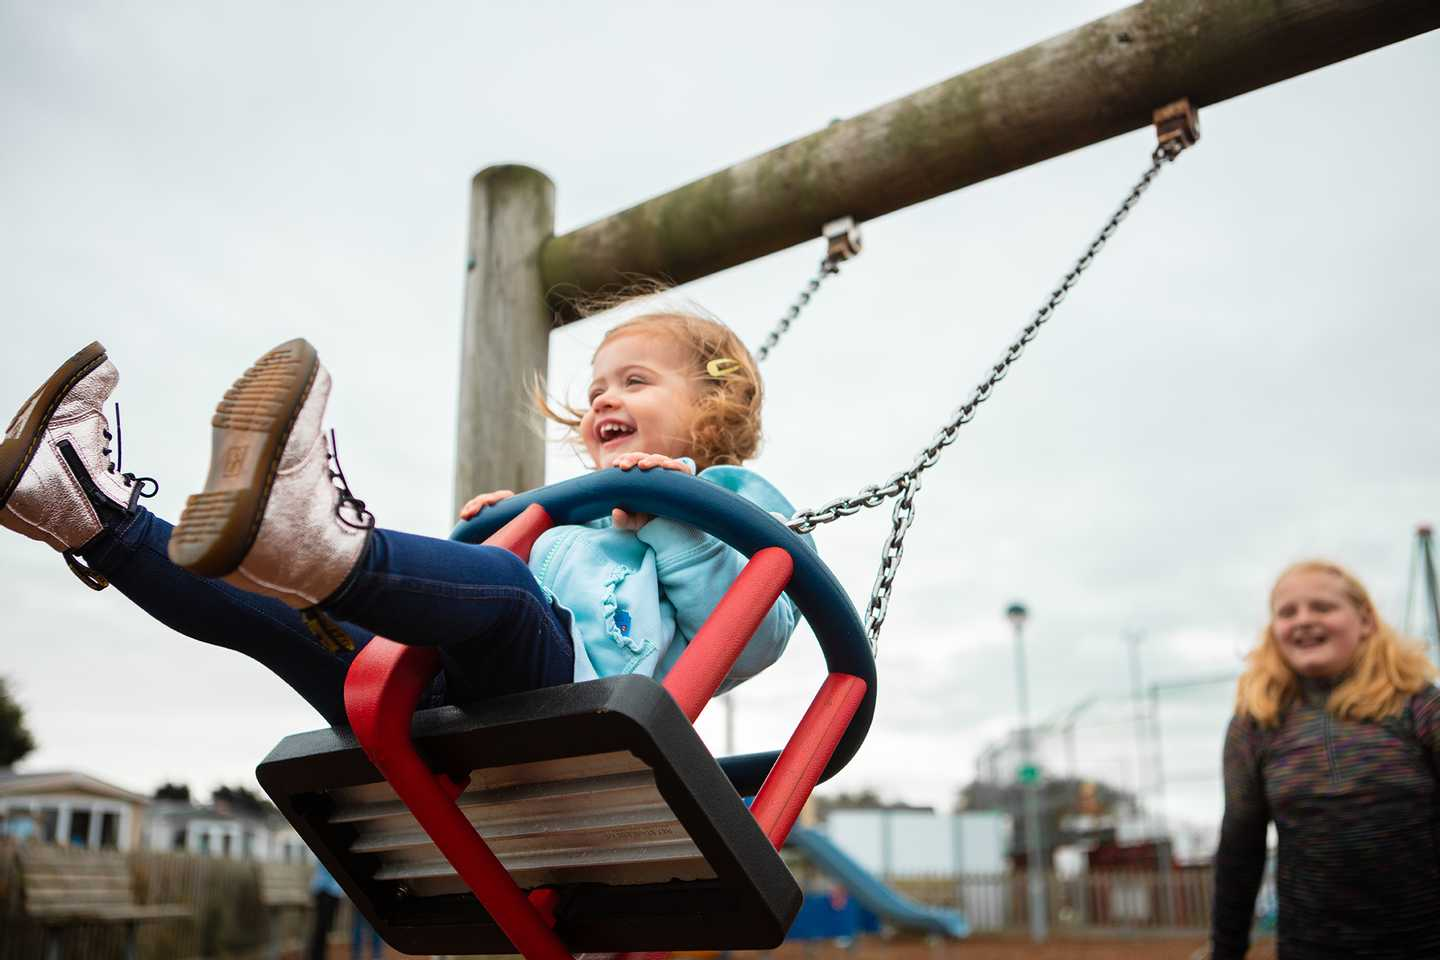 Little girl in the outdoor play area